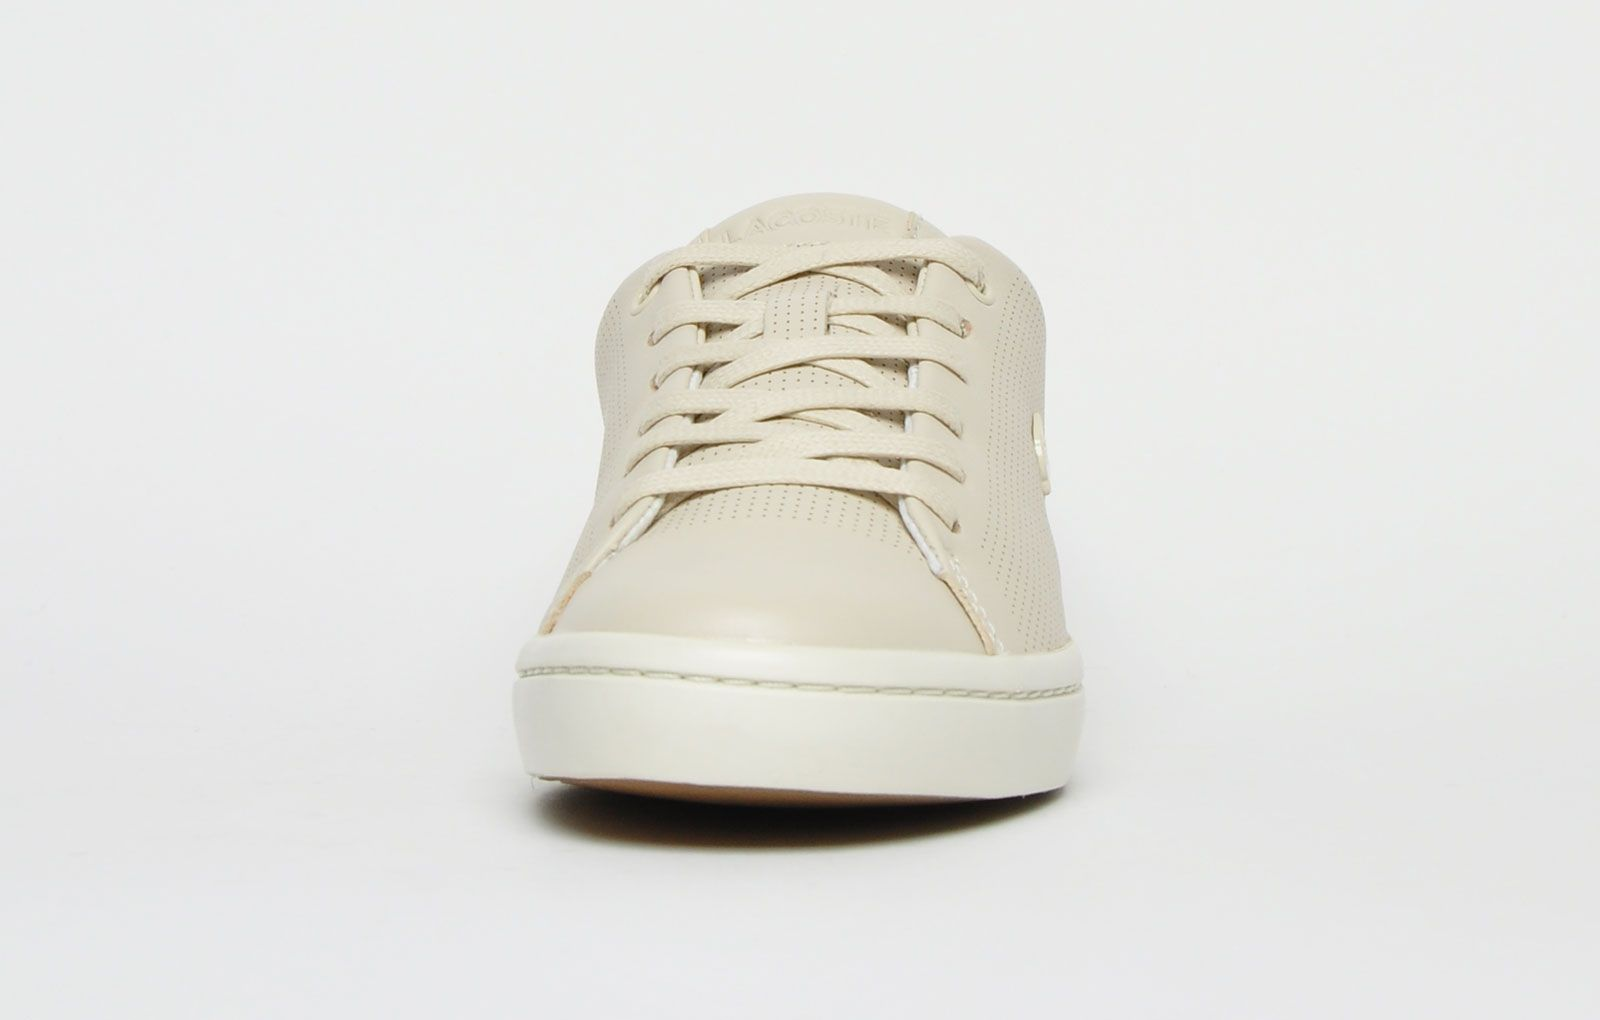 Lacoste Showcourt 2.0 Leather Womens Girls